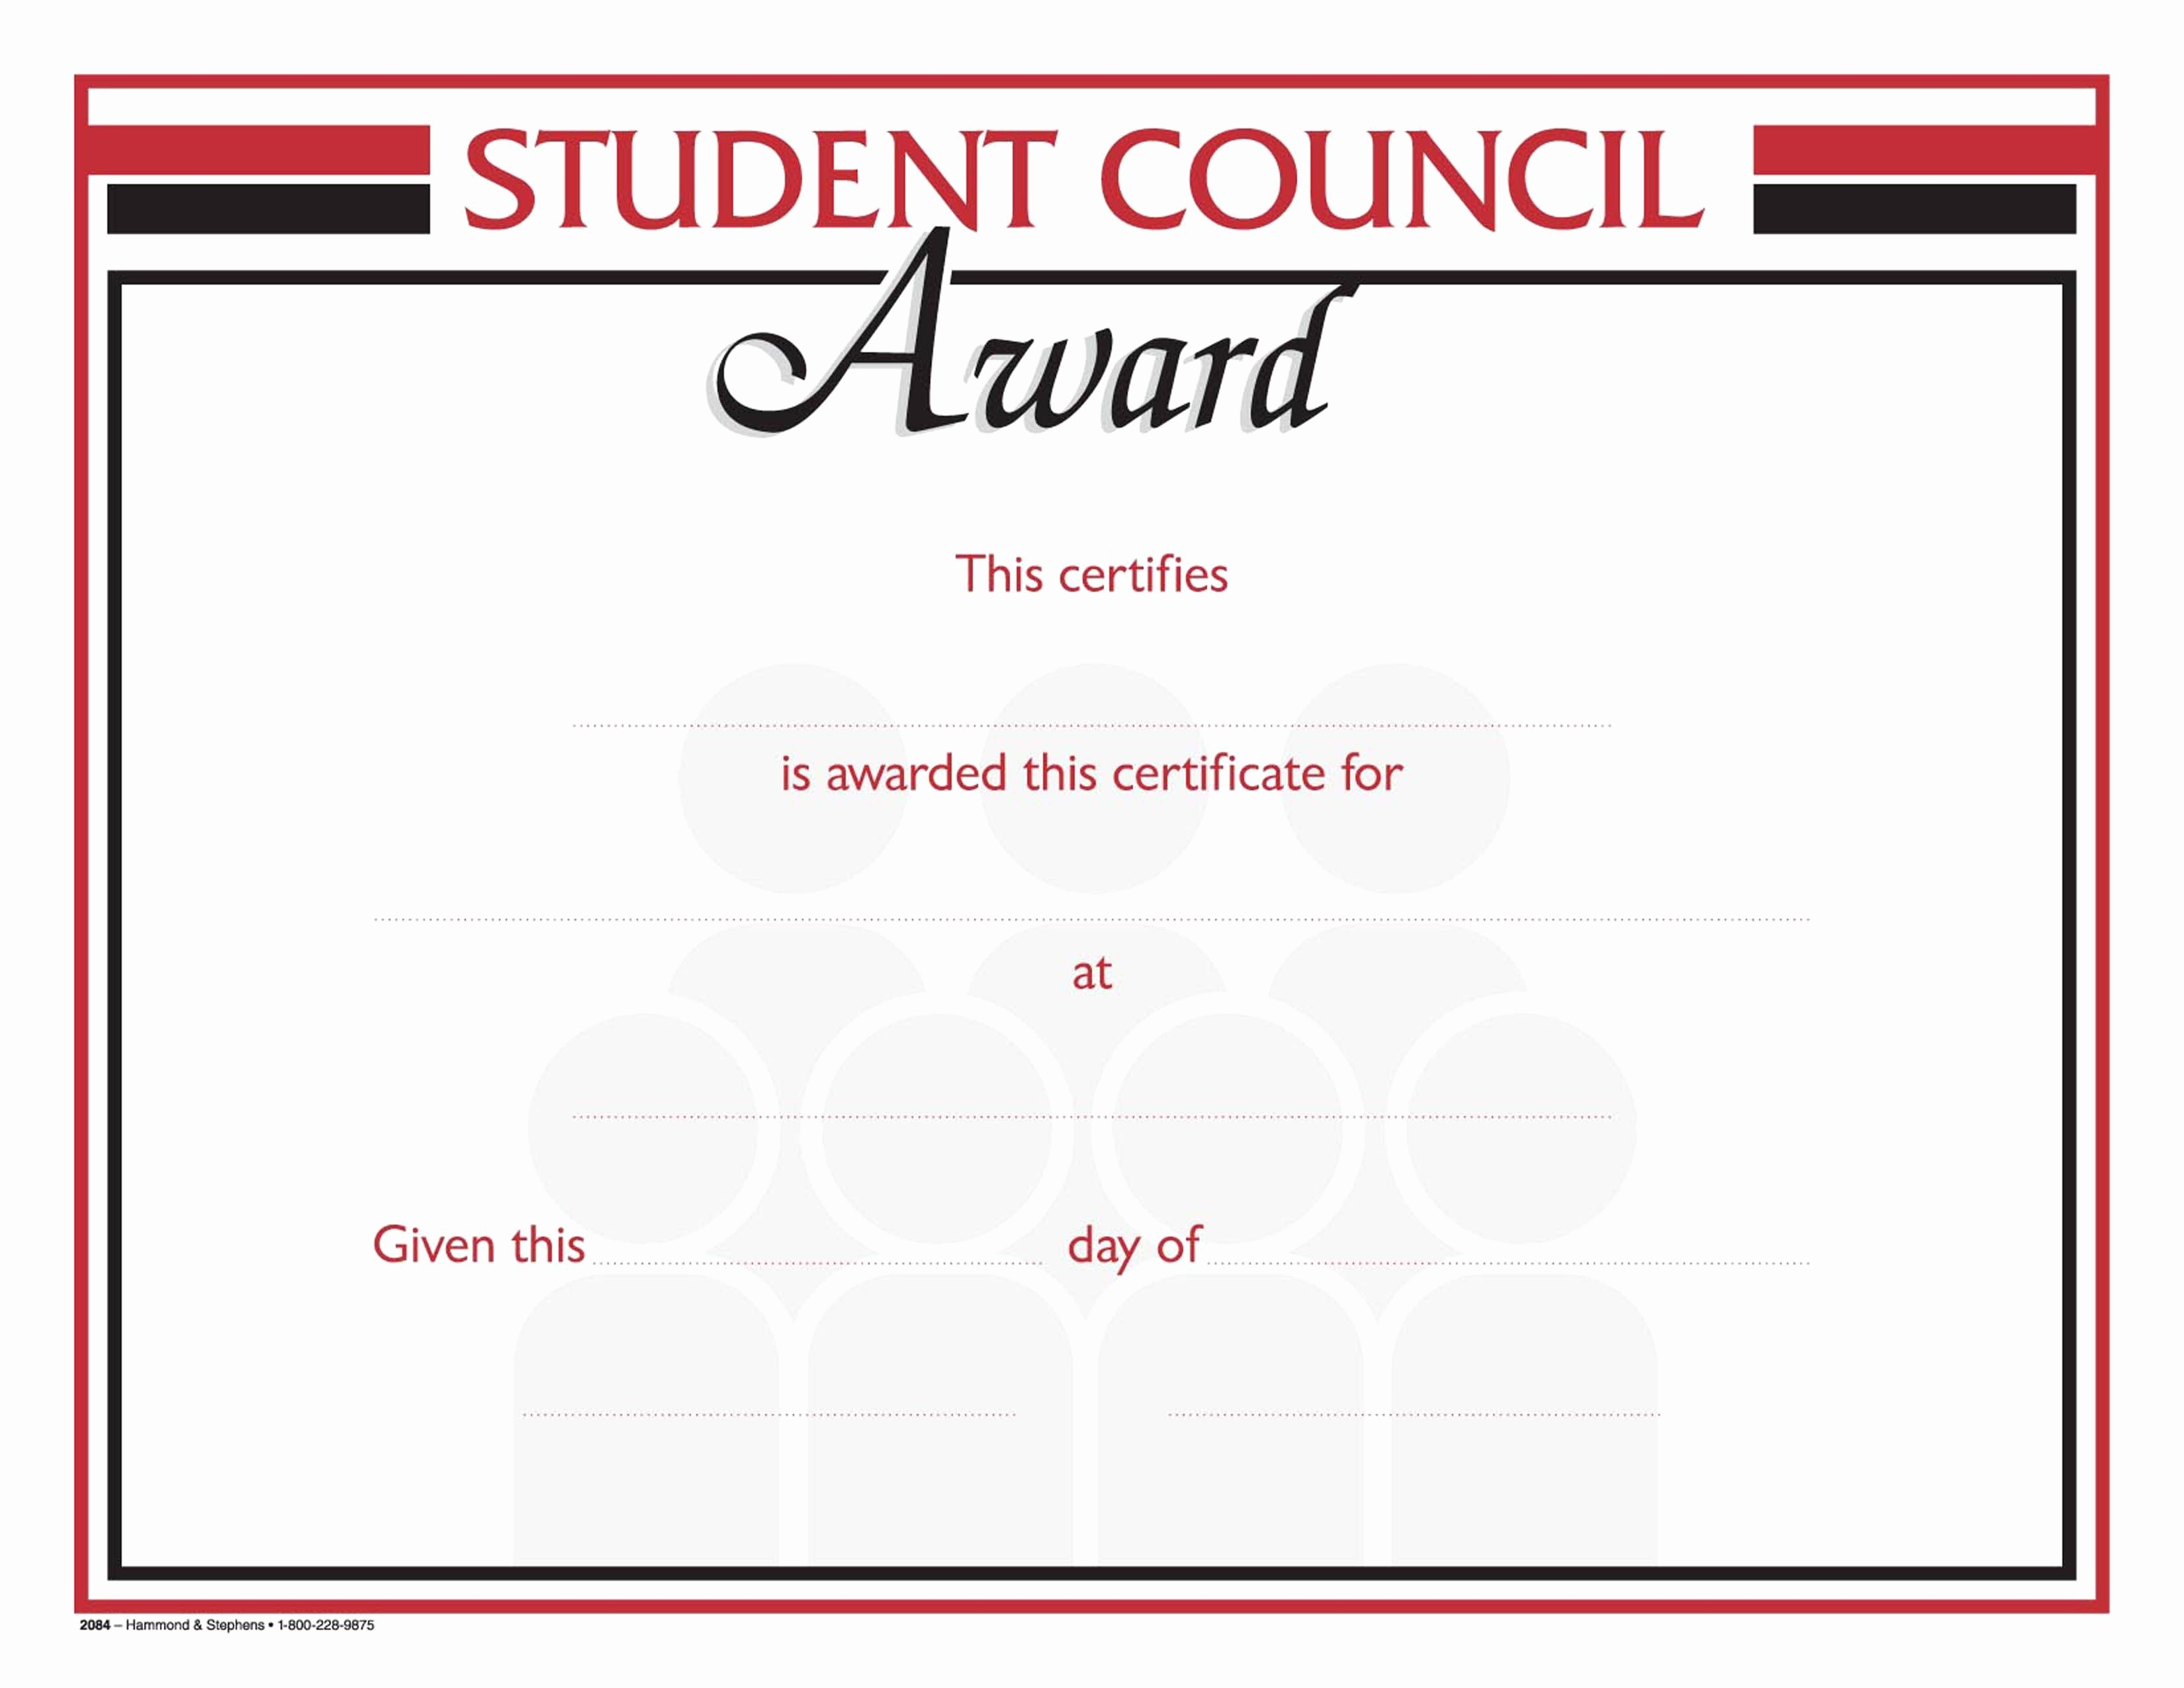 Student Council Award Certificate Template Fresh Hammond & Stephens